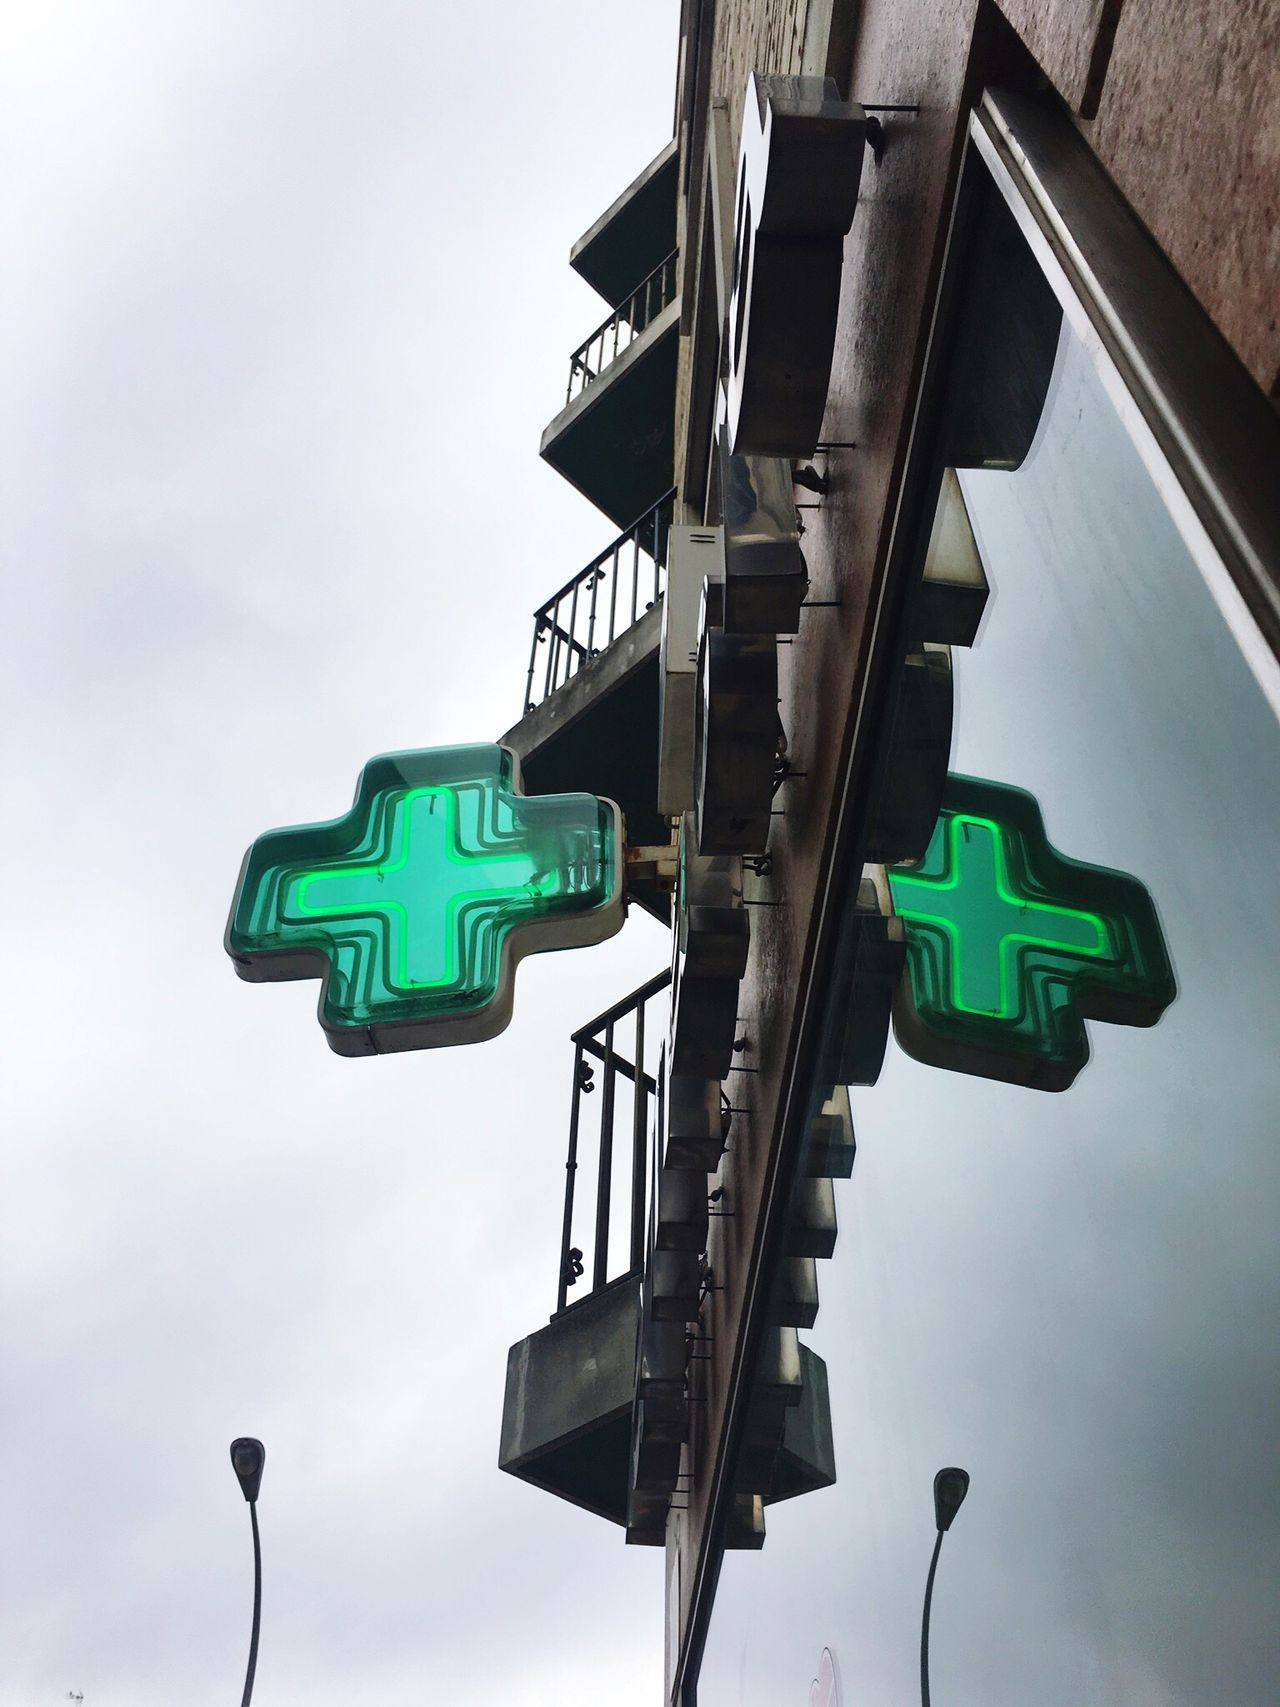 Market No People EyeEmBestPics Write Something About You Pharmacy Sky Green Color Low Angle View Cloud - Sky Outdoors Road Sign Day